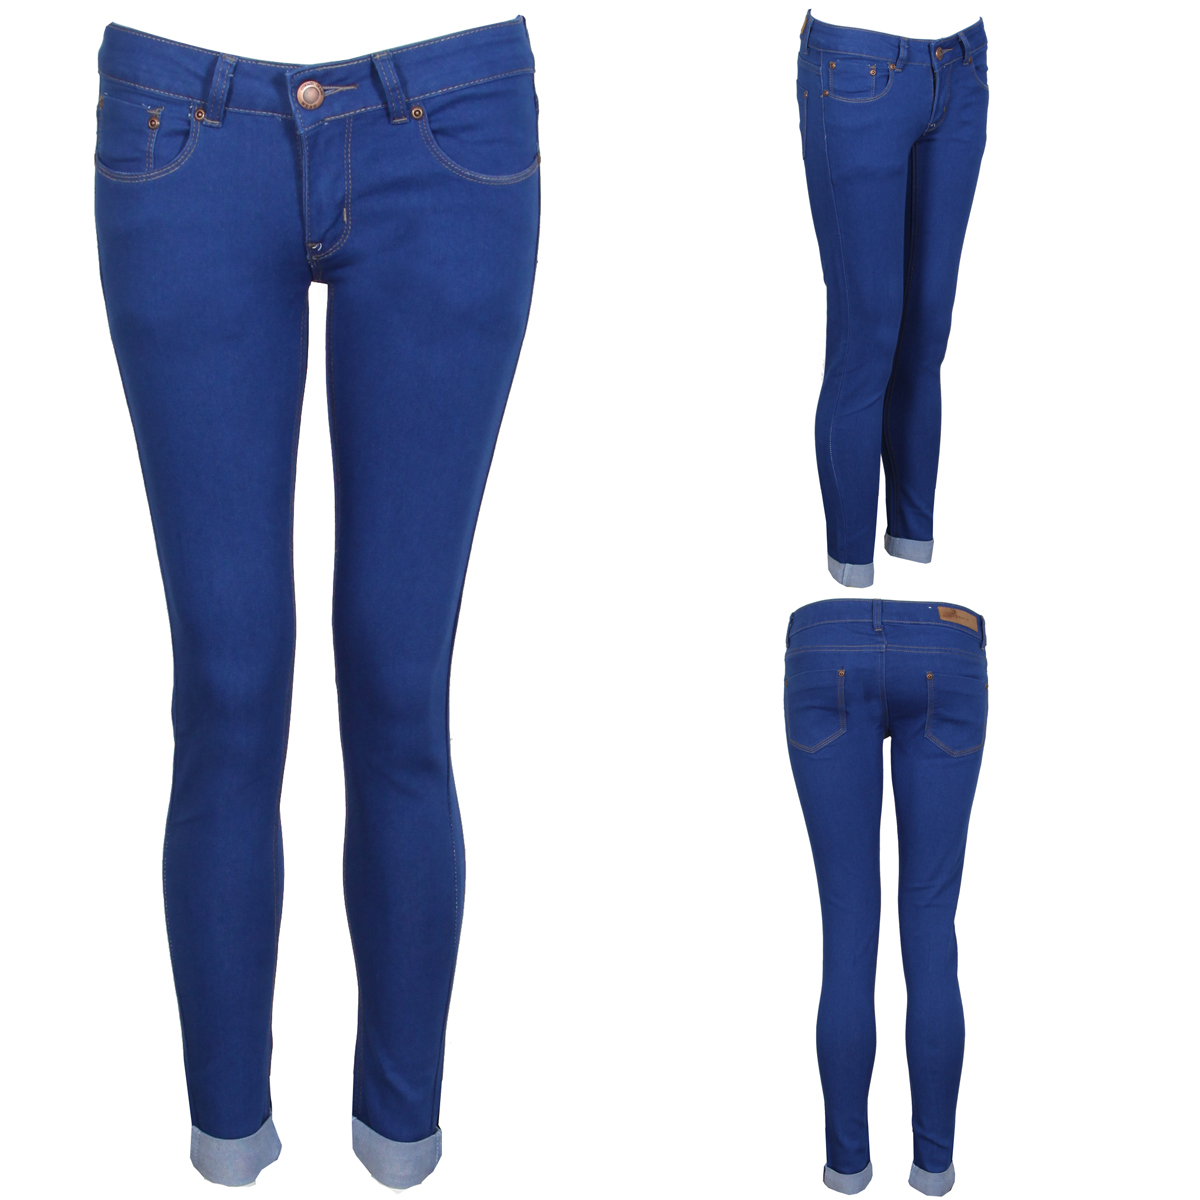 NEW WOMENS ROYAL BLUE SKINNY JEANS TURN UPS SLIM COLOURED LADIES 6 ...